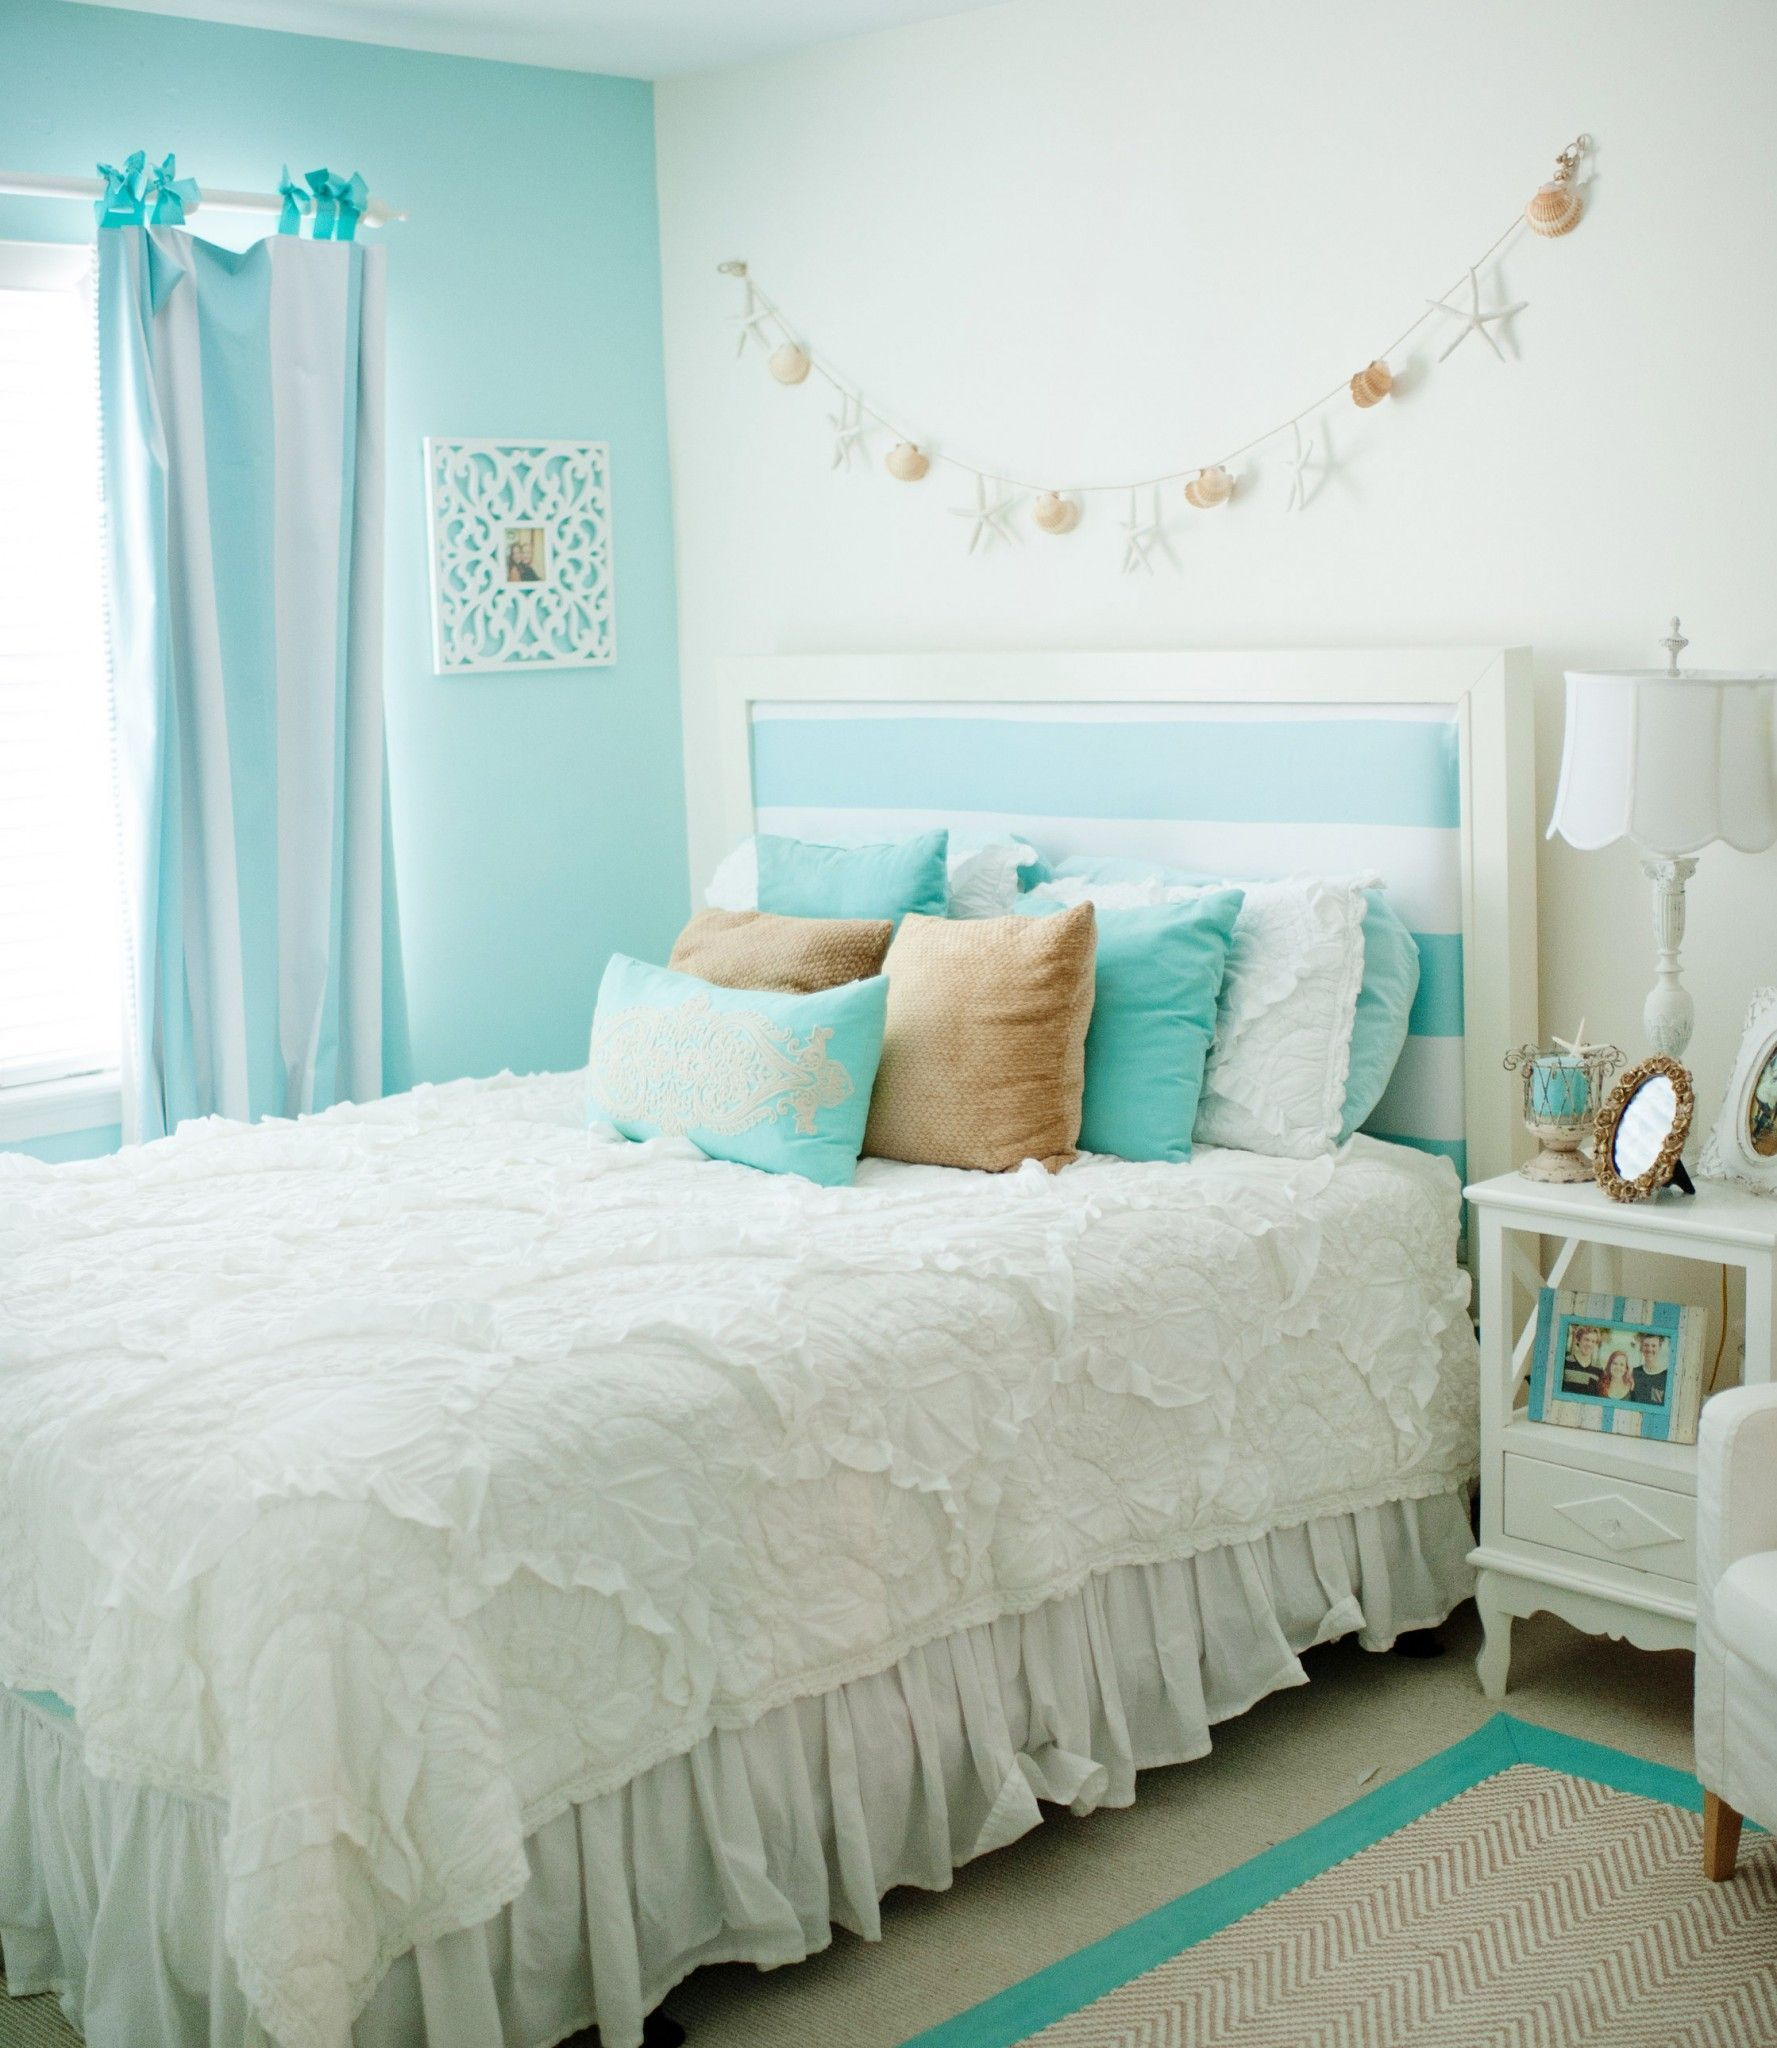 21 Cute Bedroom Ideas Girls That Will Make A Beautiful Dream Turquoise Room Bedroom Makeover Bedroom Themes